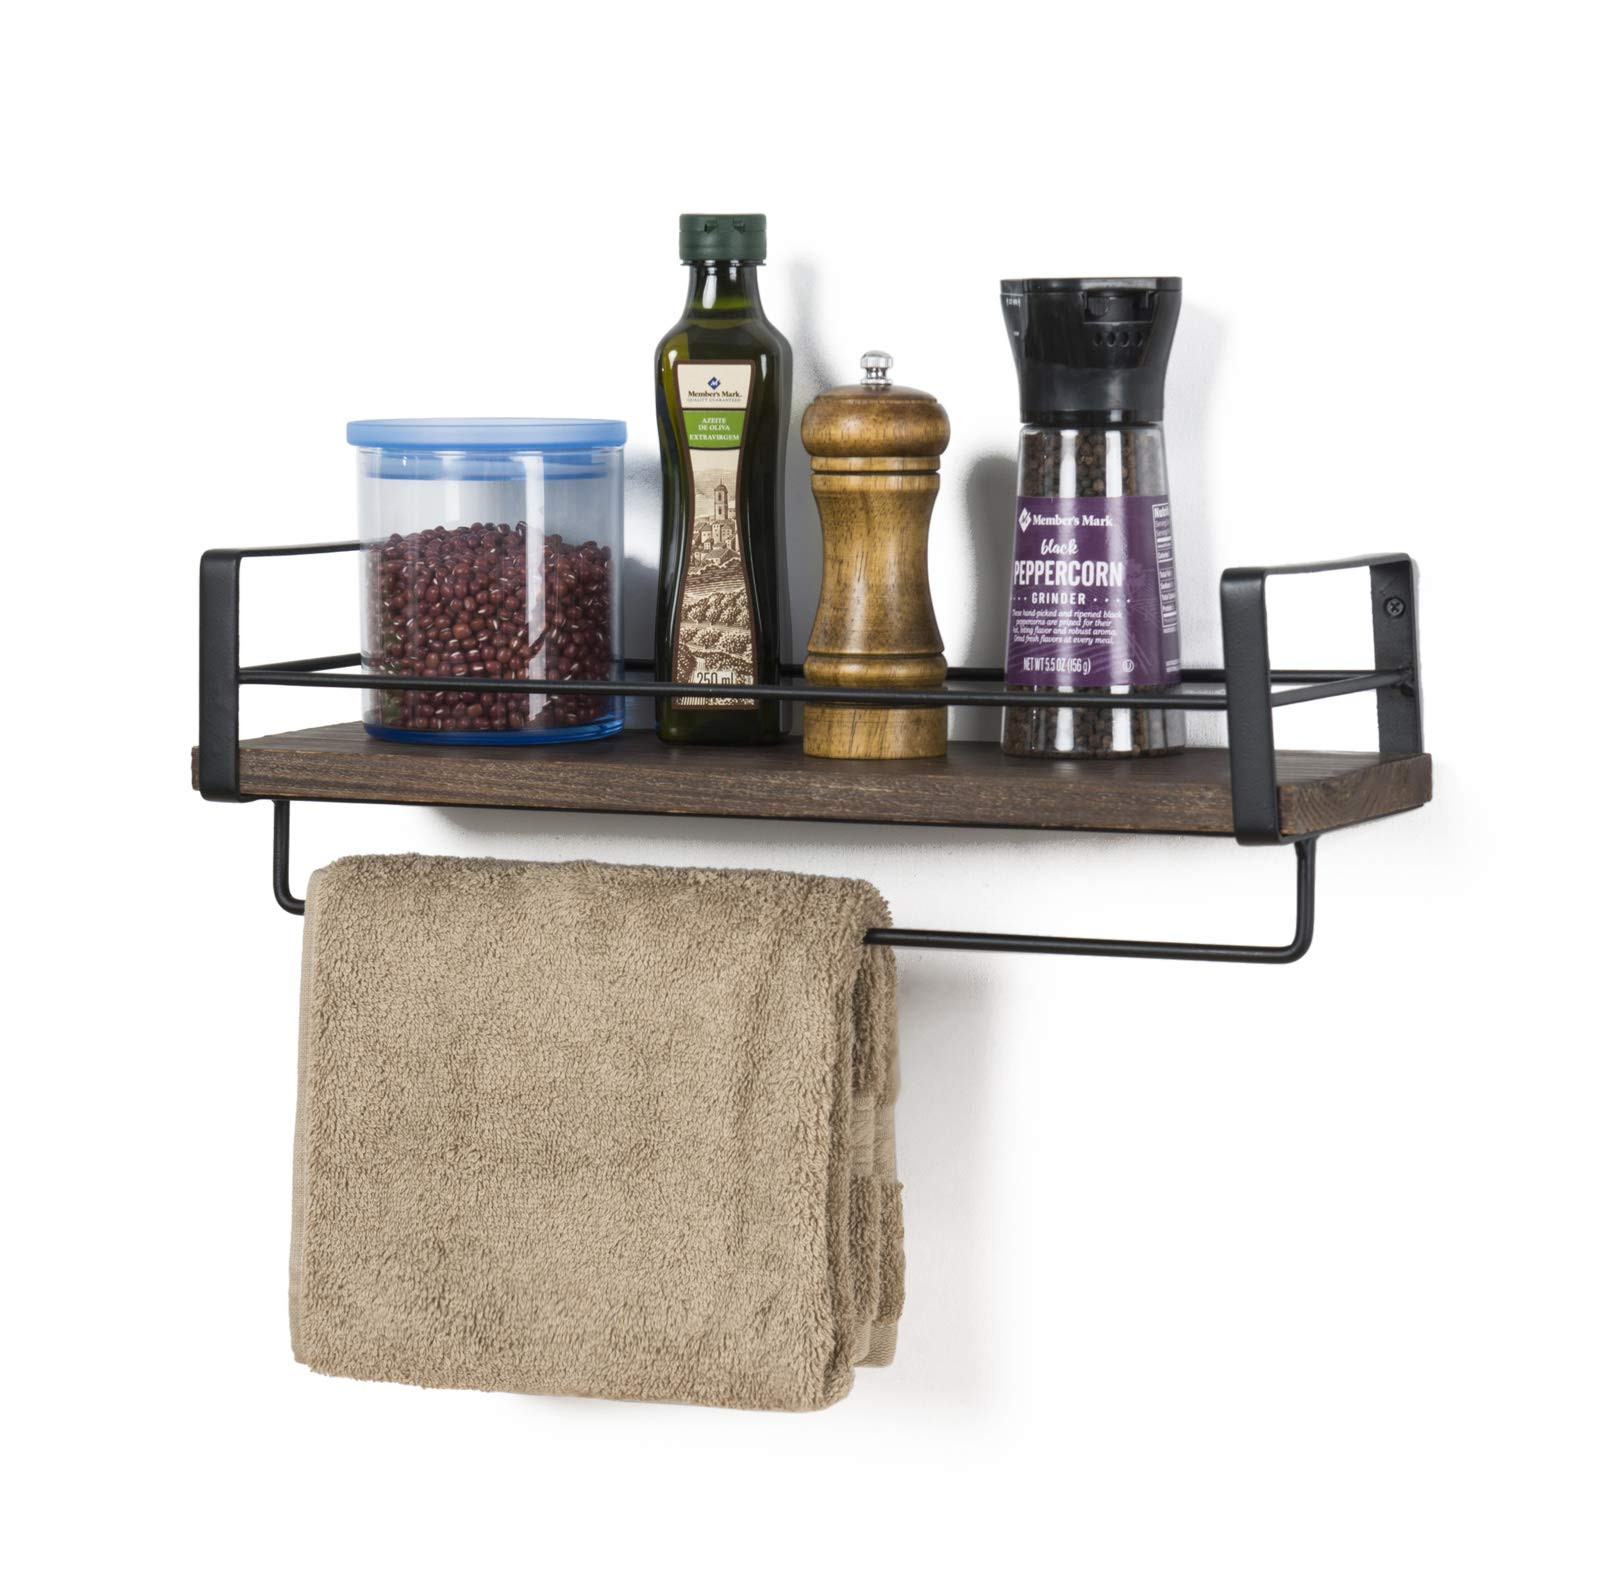 SODUKU Rustic Kitchen Wood Wall Shelf, Spice Rack Shelf with Towel Bar,Wood and Metal Floating Shelves Wall Mounted Toilet Storage Shelf for Kitchen Bathroom Bedroom Living Room - STURDY STRUCTURE- Simple design rustic wood shelves constructed of solid paulownia wood boards and powder coated metal brackets.Lightweight but solid wood can holds up to 50 lbs. EASY INSTALLATION - There comes with necessary durable hardware tool,super easy to assemble on the wall.The rustic wood shelves overall dimension: 16.33''L X 5.6''W X 5.9''H EFFICIENT SPACE SAVER - Our rustic wood wall shelf offers a large space for storage and can display in your kitchen, living room, bedroom, bathroom, entryway and more. Creates ample shelf space in unused areas of the home,perfect solution for compact areas. - wall-shelves, living-room-furniture, living-room - 71aujD6c3PL -